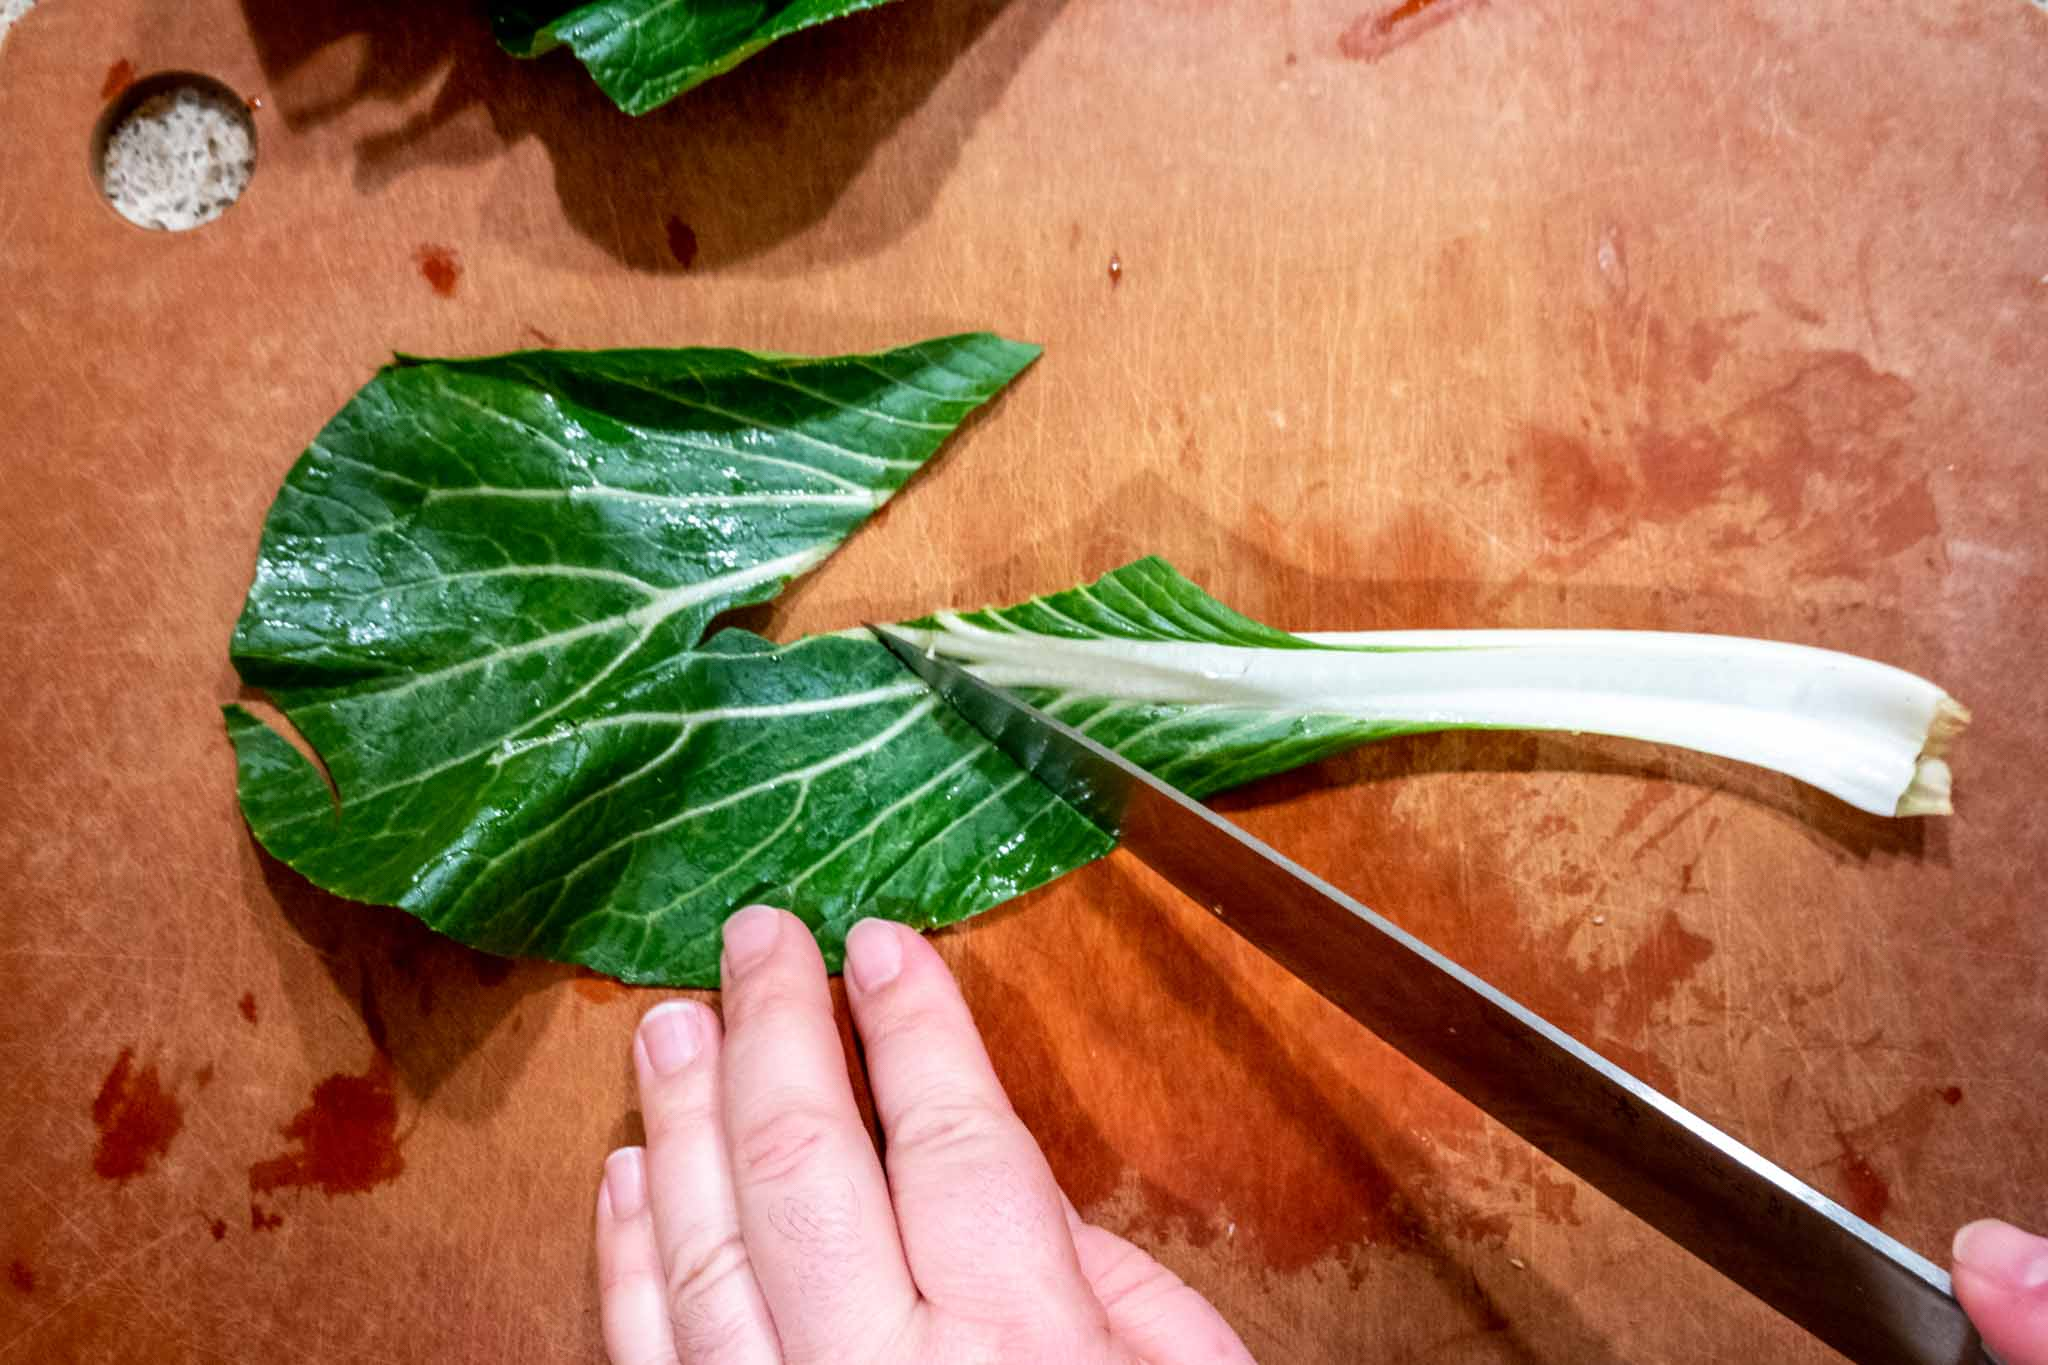 Person removing  bok choy stem from leaf with a knife